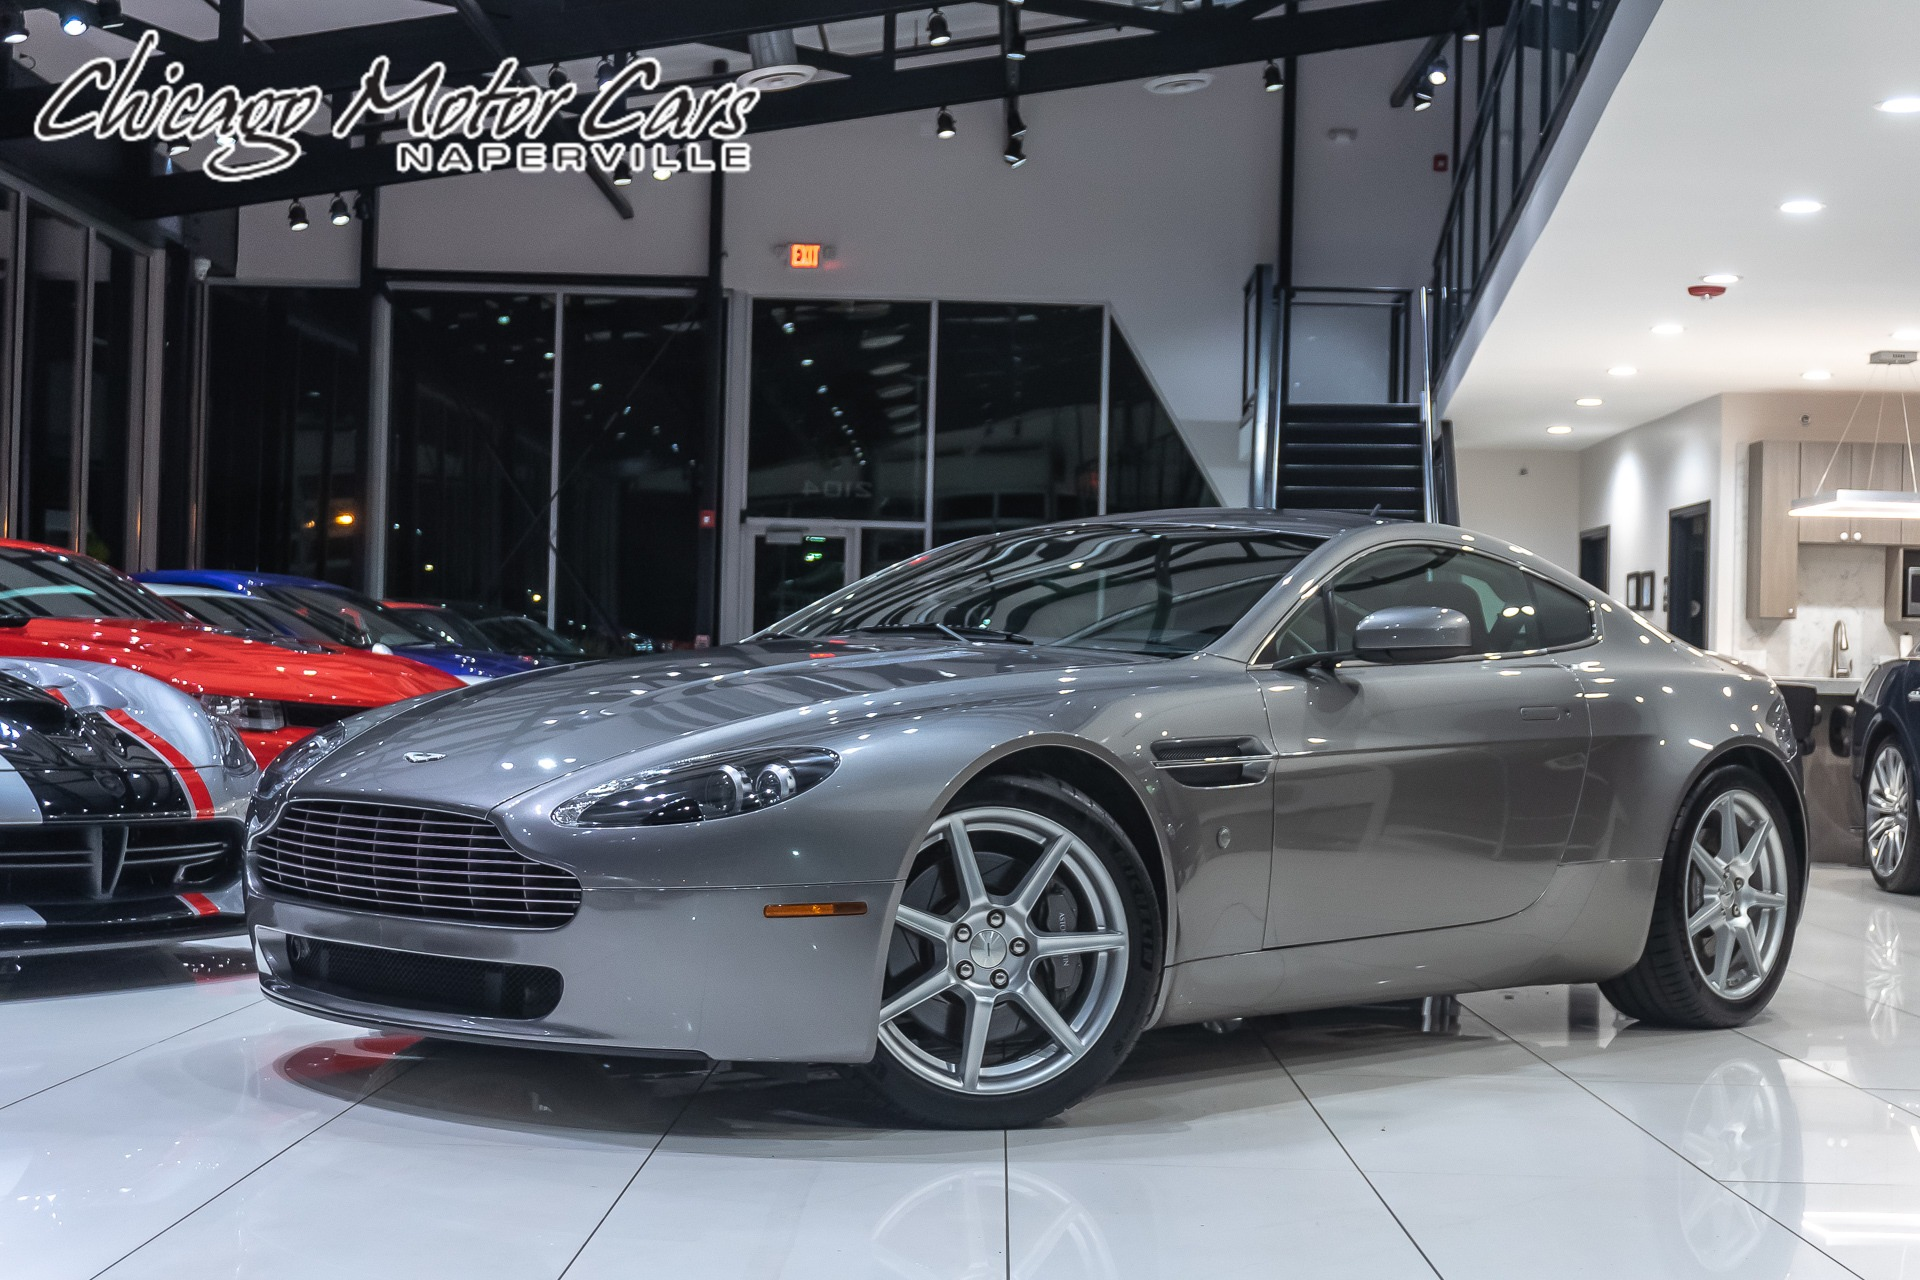 Used 2006 Aston Martin Vantage V8 Coupe 6 Speed Manual For Sale Special Pricing Chicago Motor Cars Stock 16137b